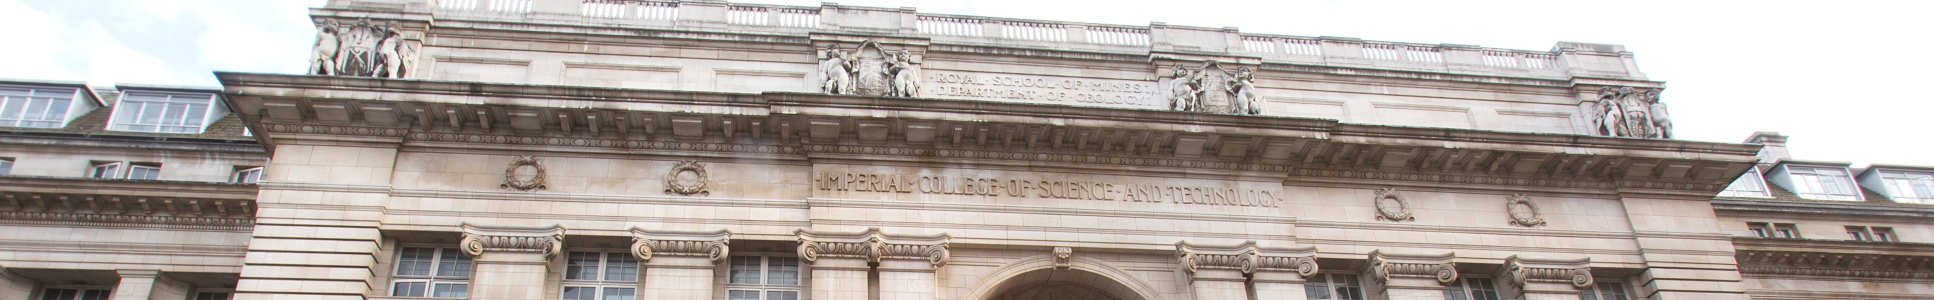 Image of Imperial College London building